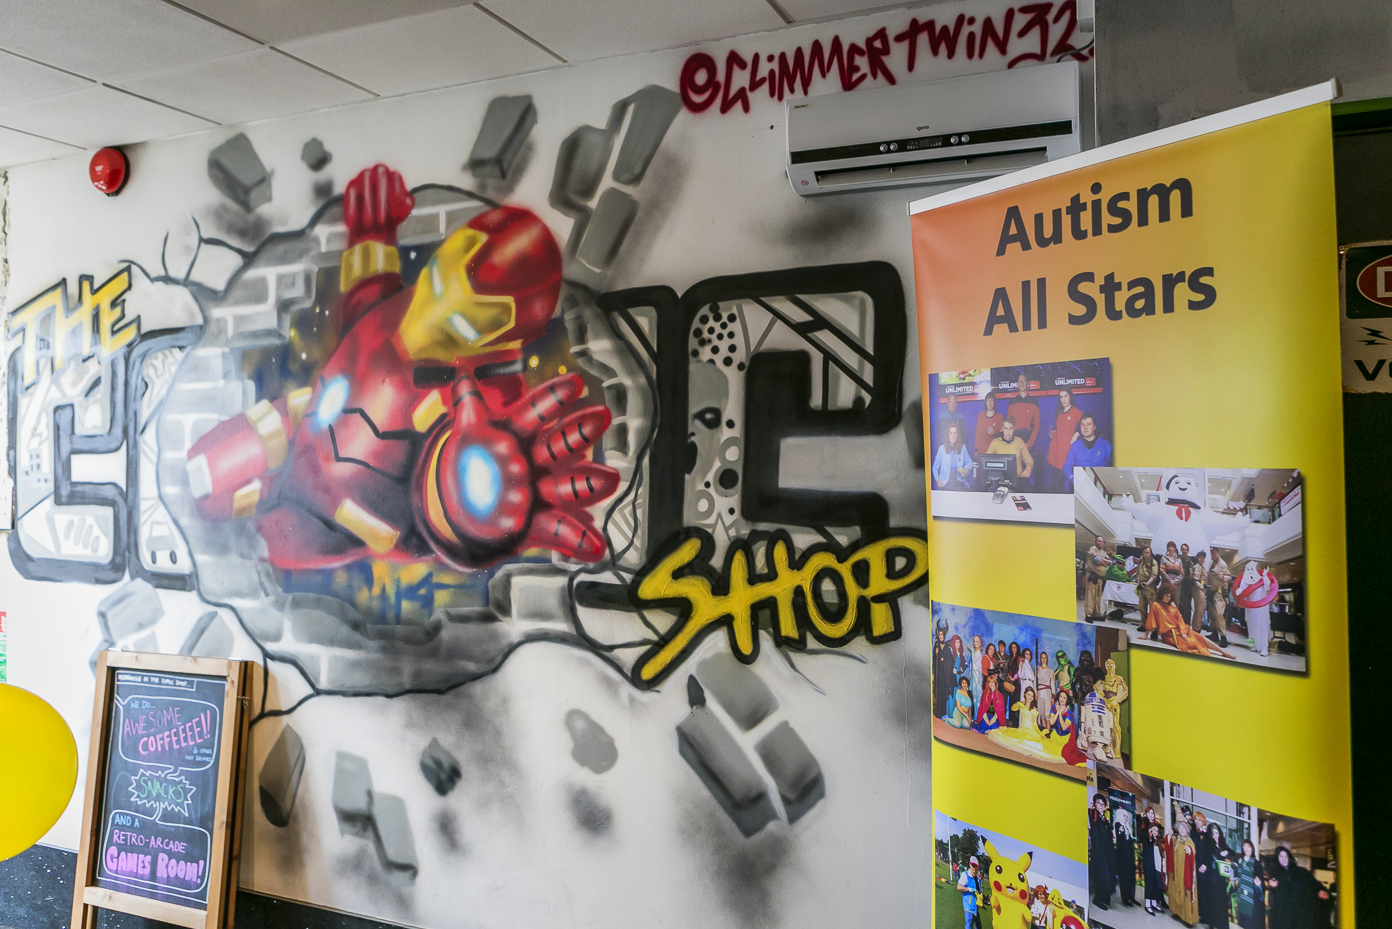 Aspergers, autism, Autism All Stars, autism awareness, characters, charity, cinema, Cineworld, cosplay, diversity, events, sussex, crawley, west sussex, the comic shop, gaming, arcade, coffee shop,